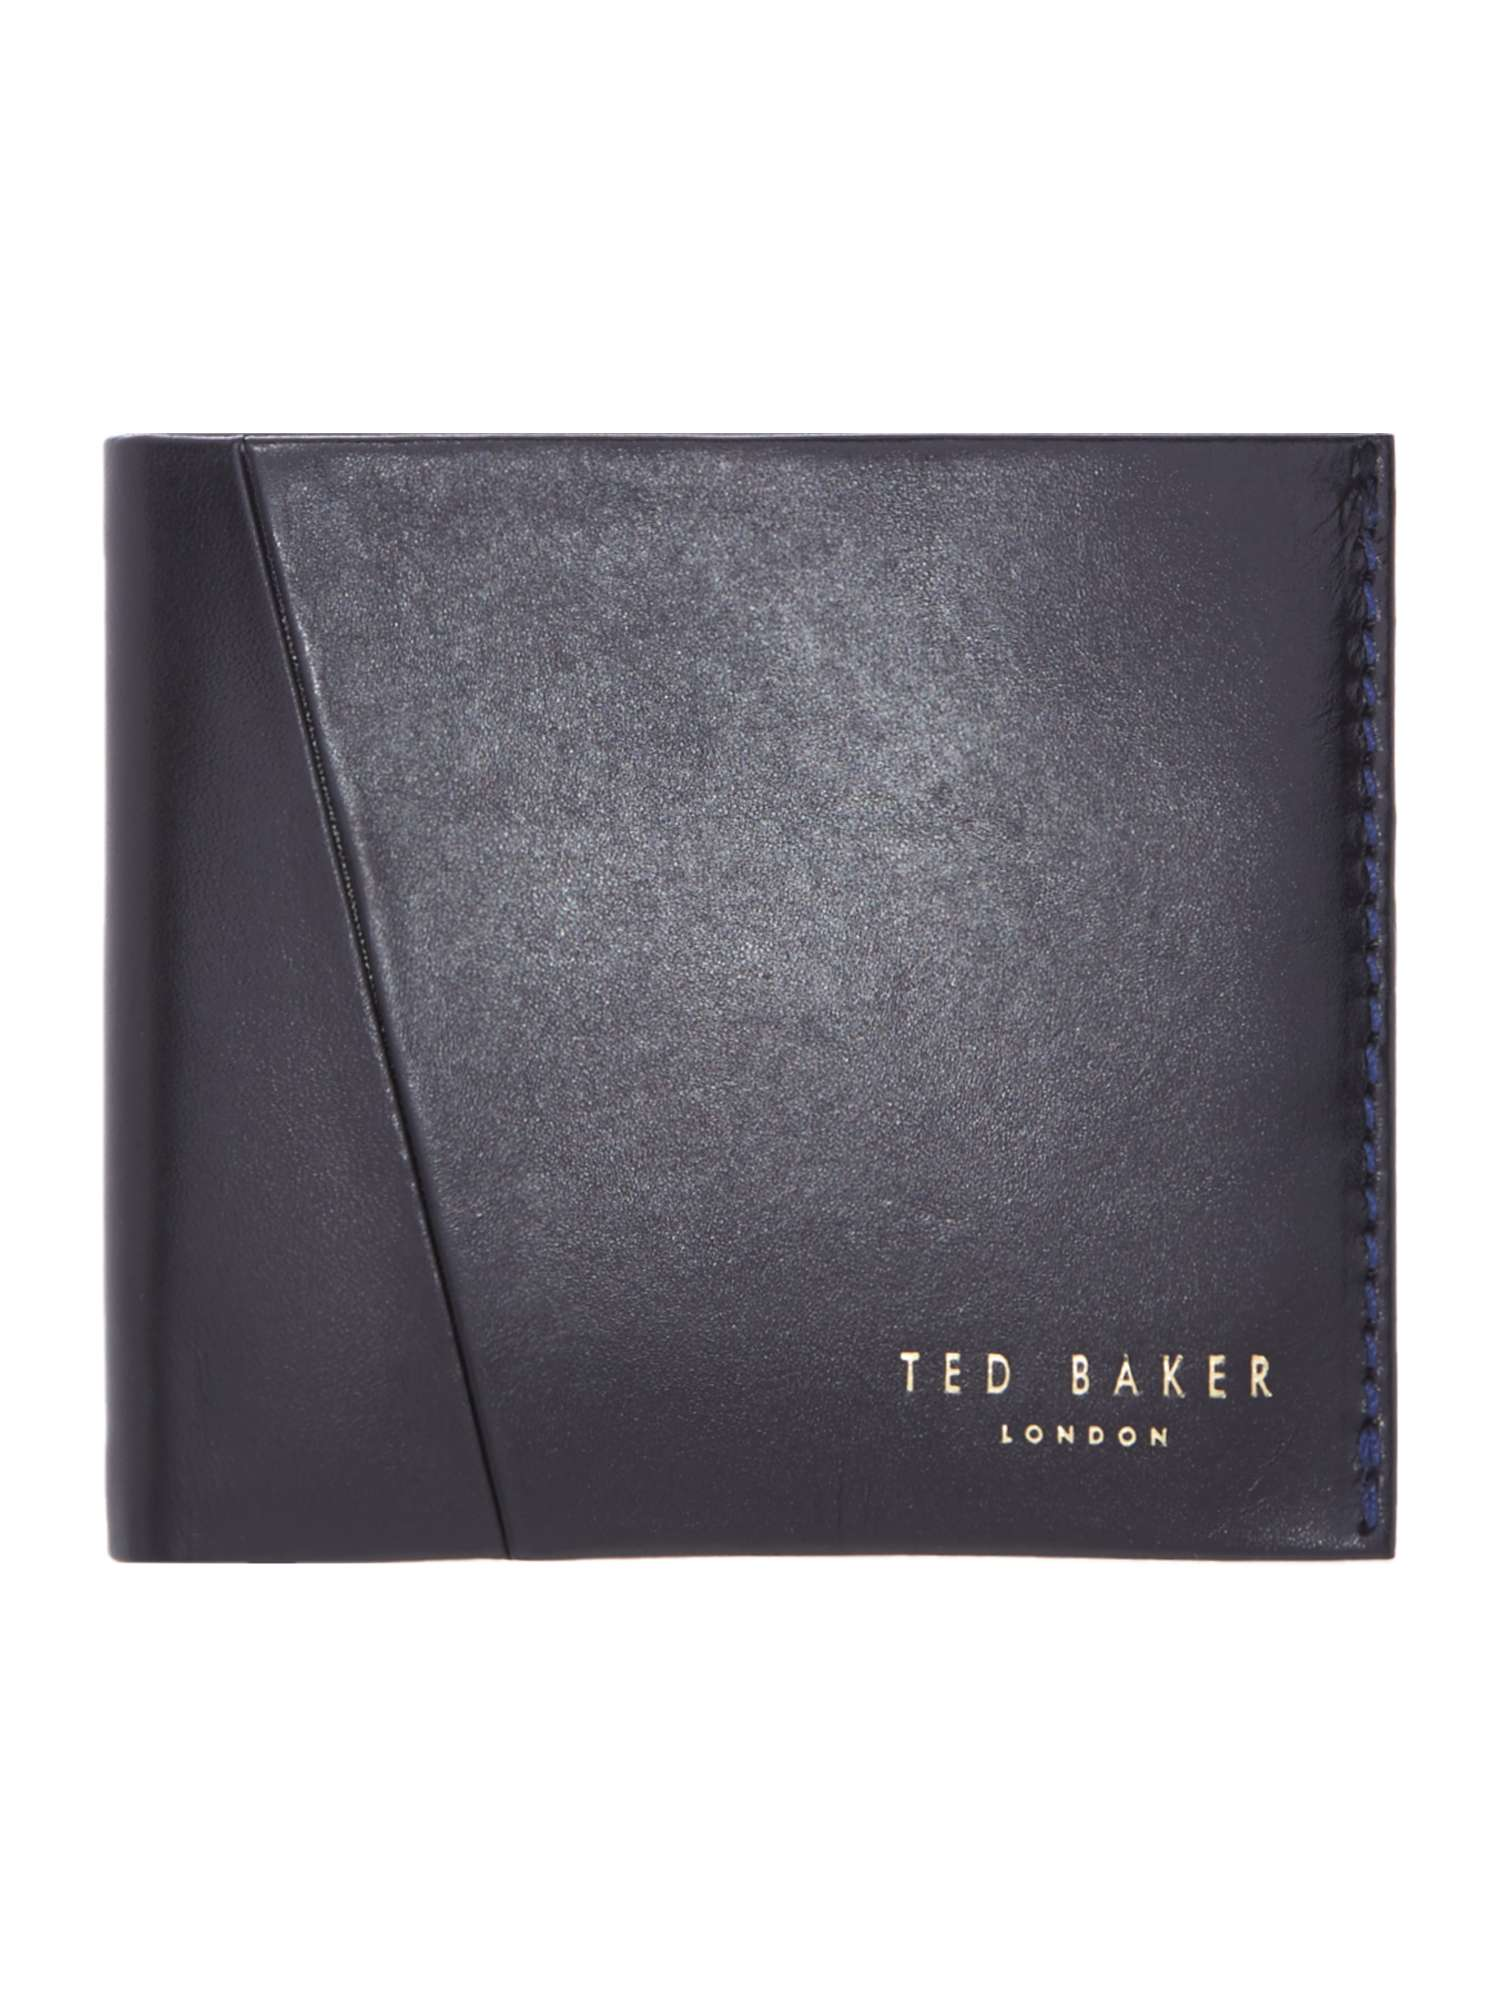 Wallets mens wallets house of fraser ted baker twixxle wallet and card holder gift set negle Choice Image